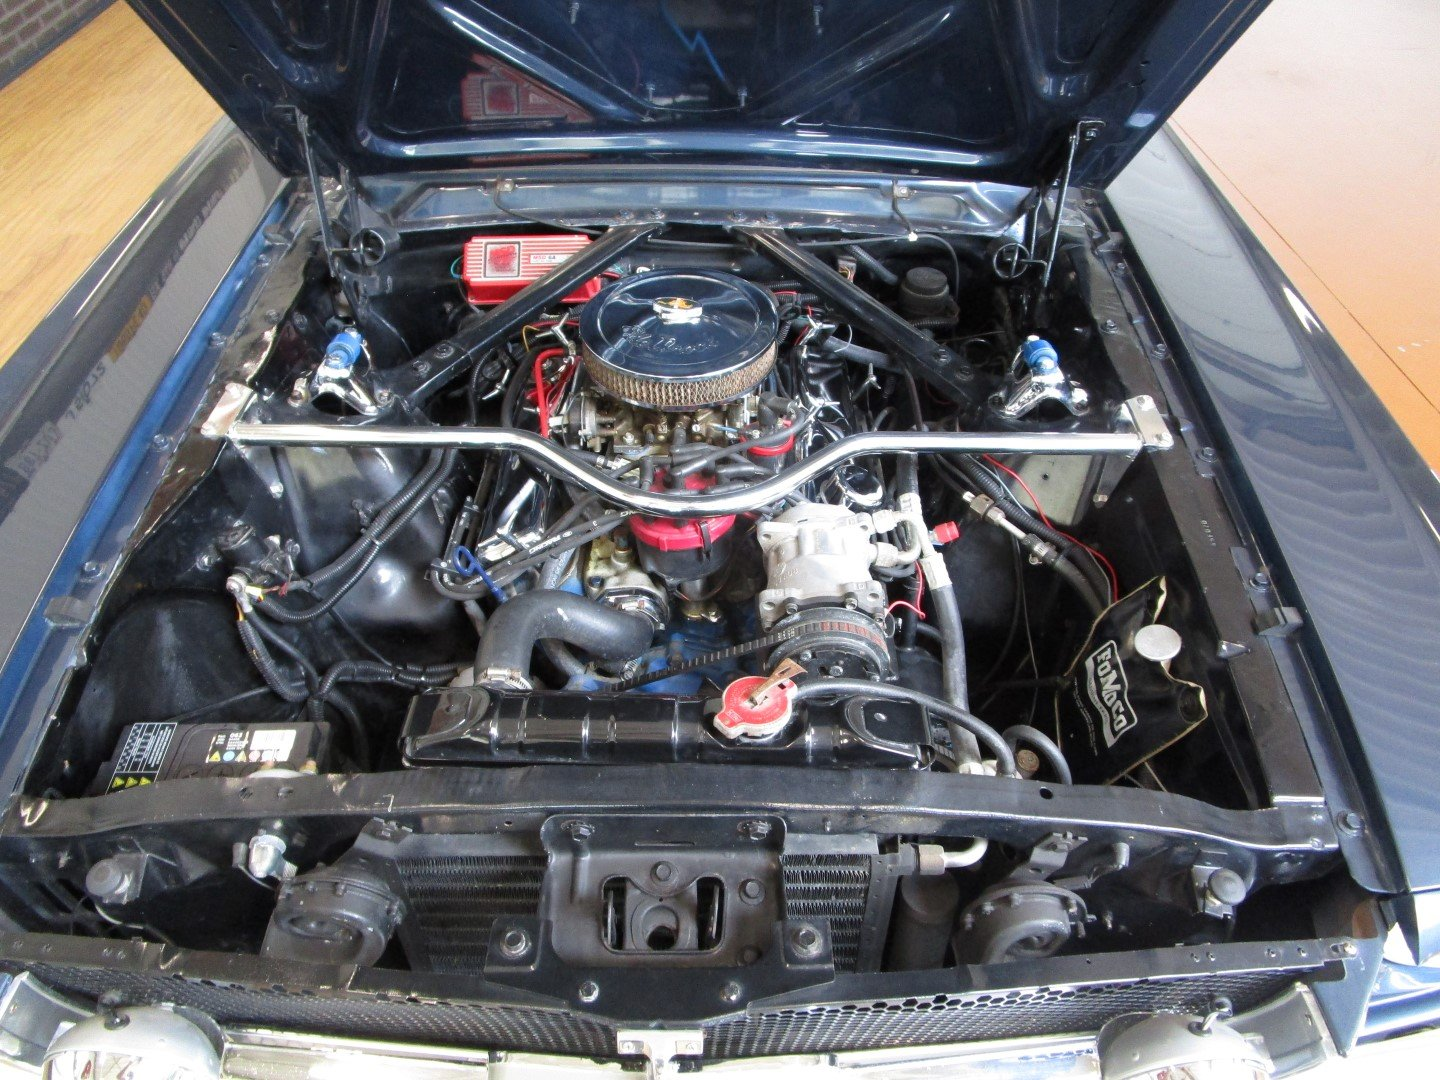 1965 Ford Mustang 289 V8 Fastback 2+2 For Sale (picture 6 of 6)